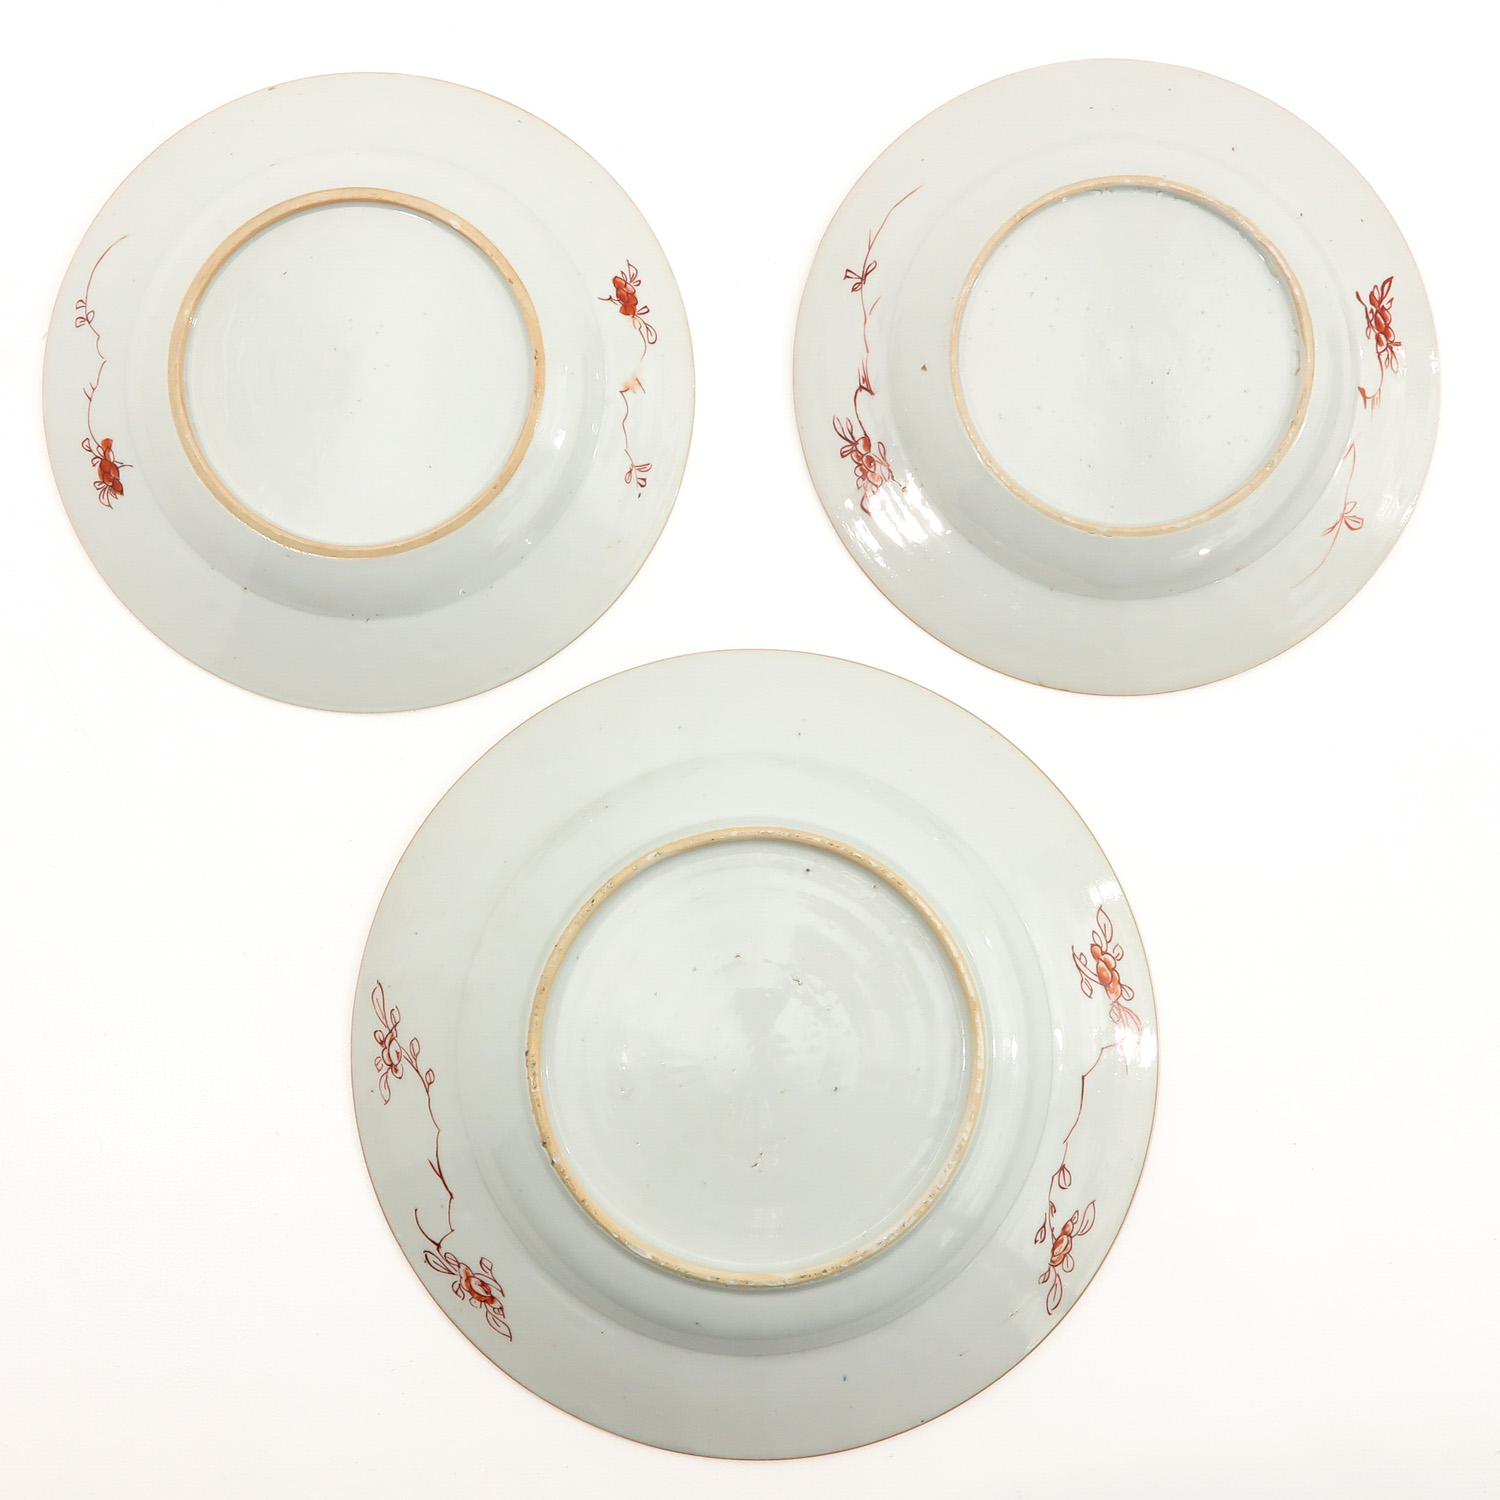 A Collection of 6 Polychrome Decor Plates - Image 4 of 9